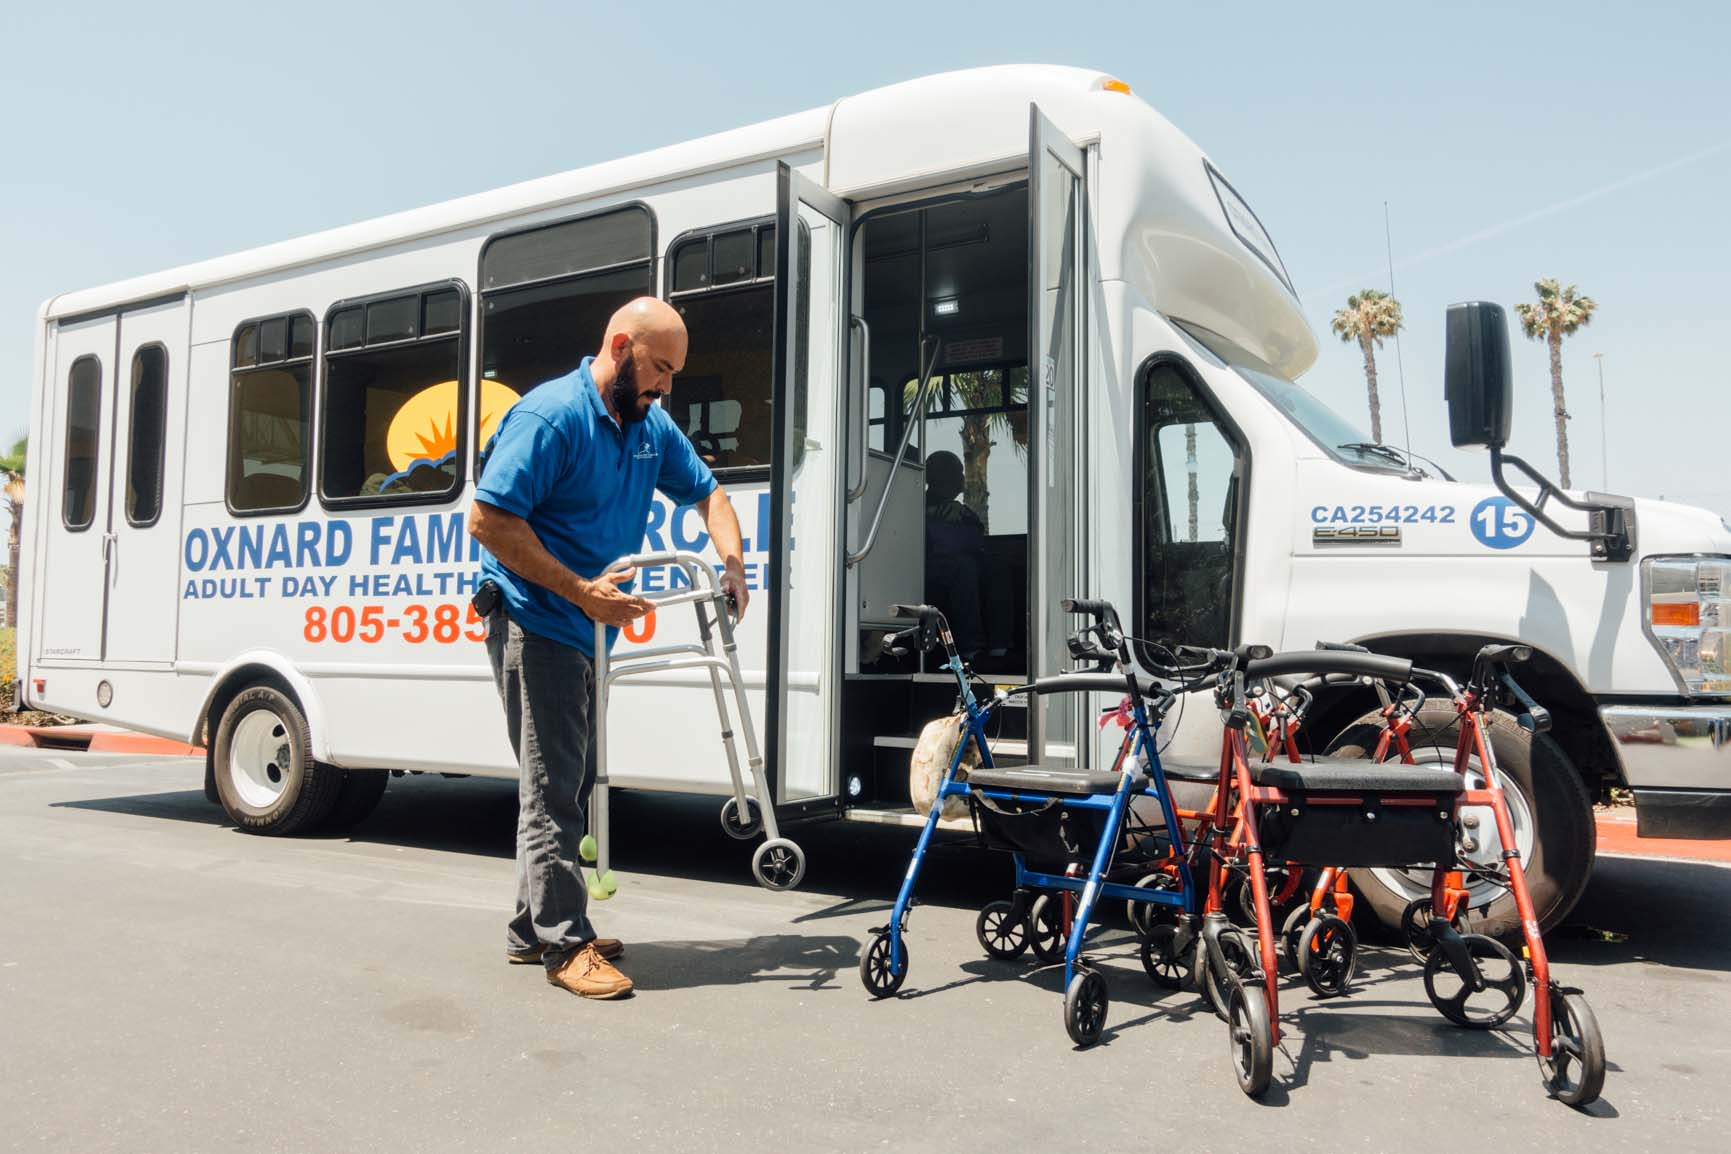 Caption: Participants in Oxnard Family Circle's Adult Day Healthcare program get transportation to and from home on weekdays., Credit: Libby Denkmann/American Homefront